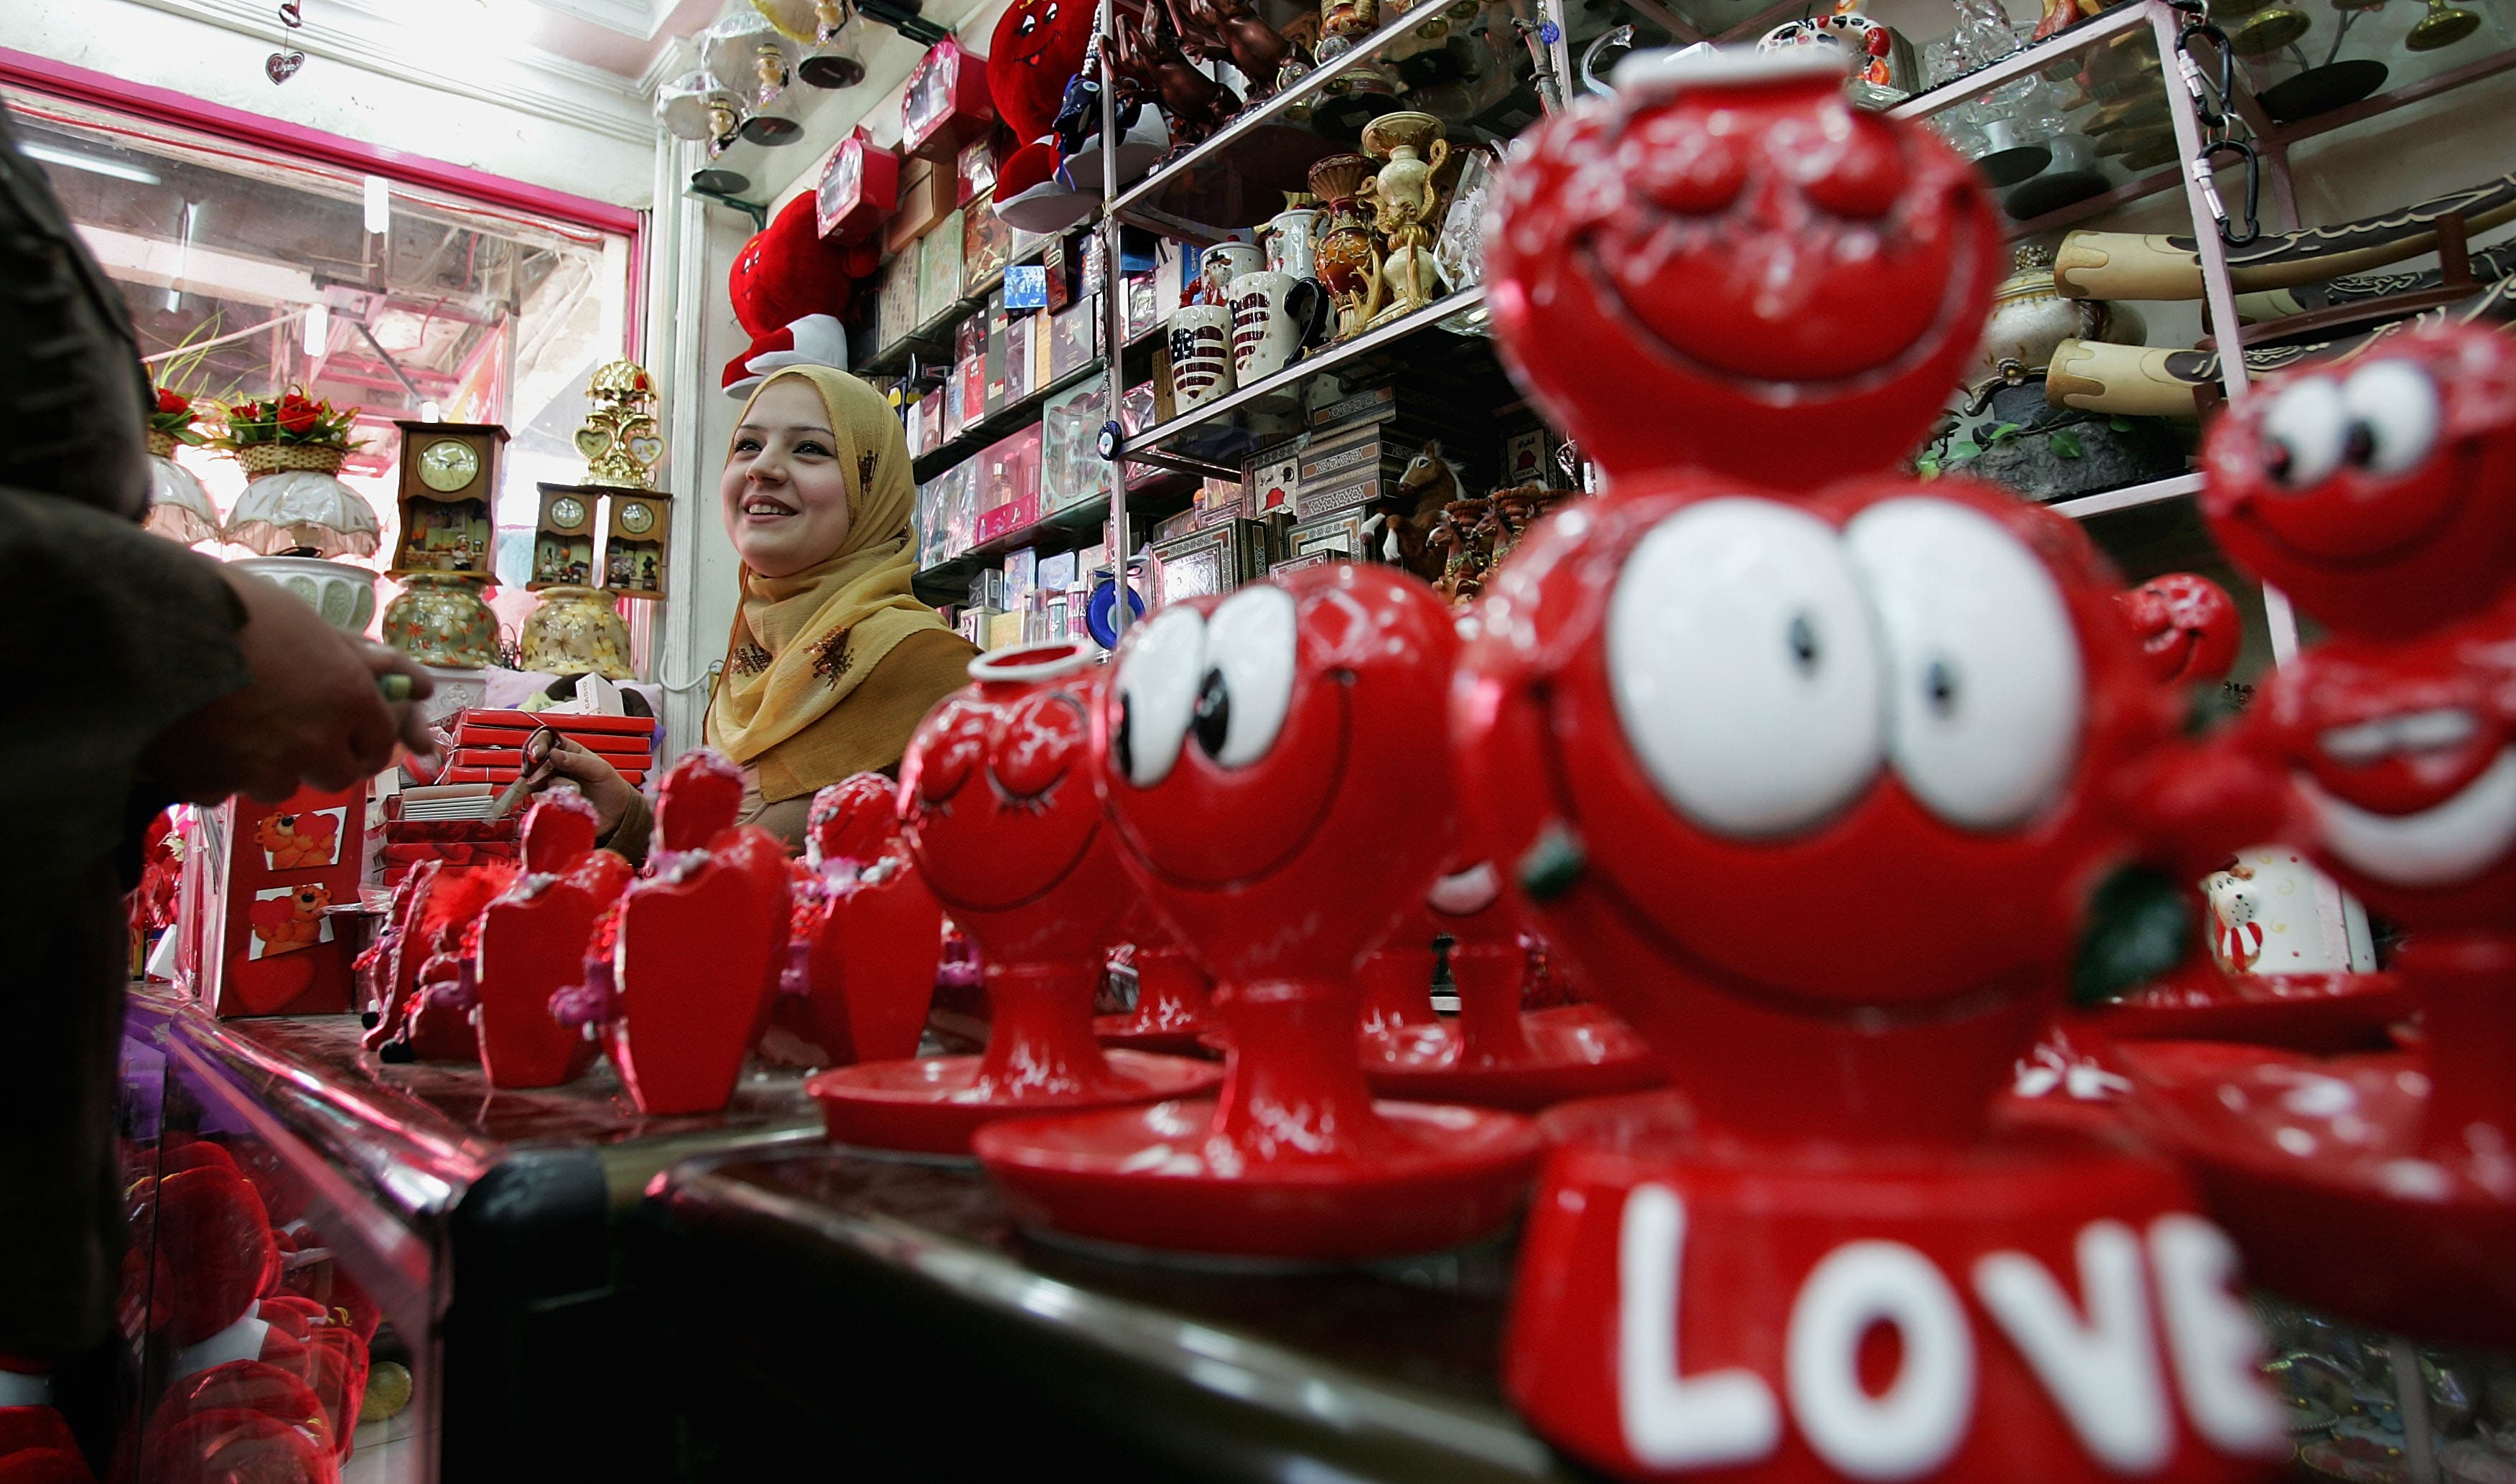 Is the Valentine's Day spirit getting too much for the singles of the Middle East?